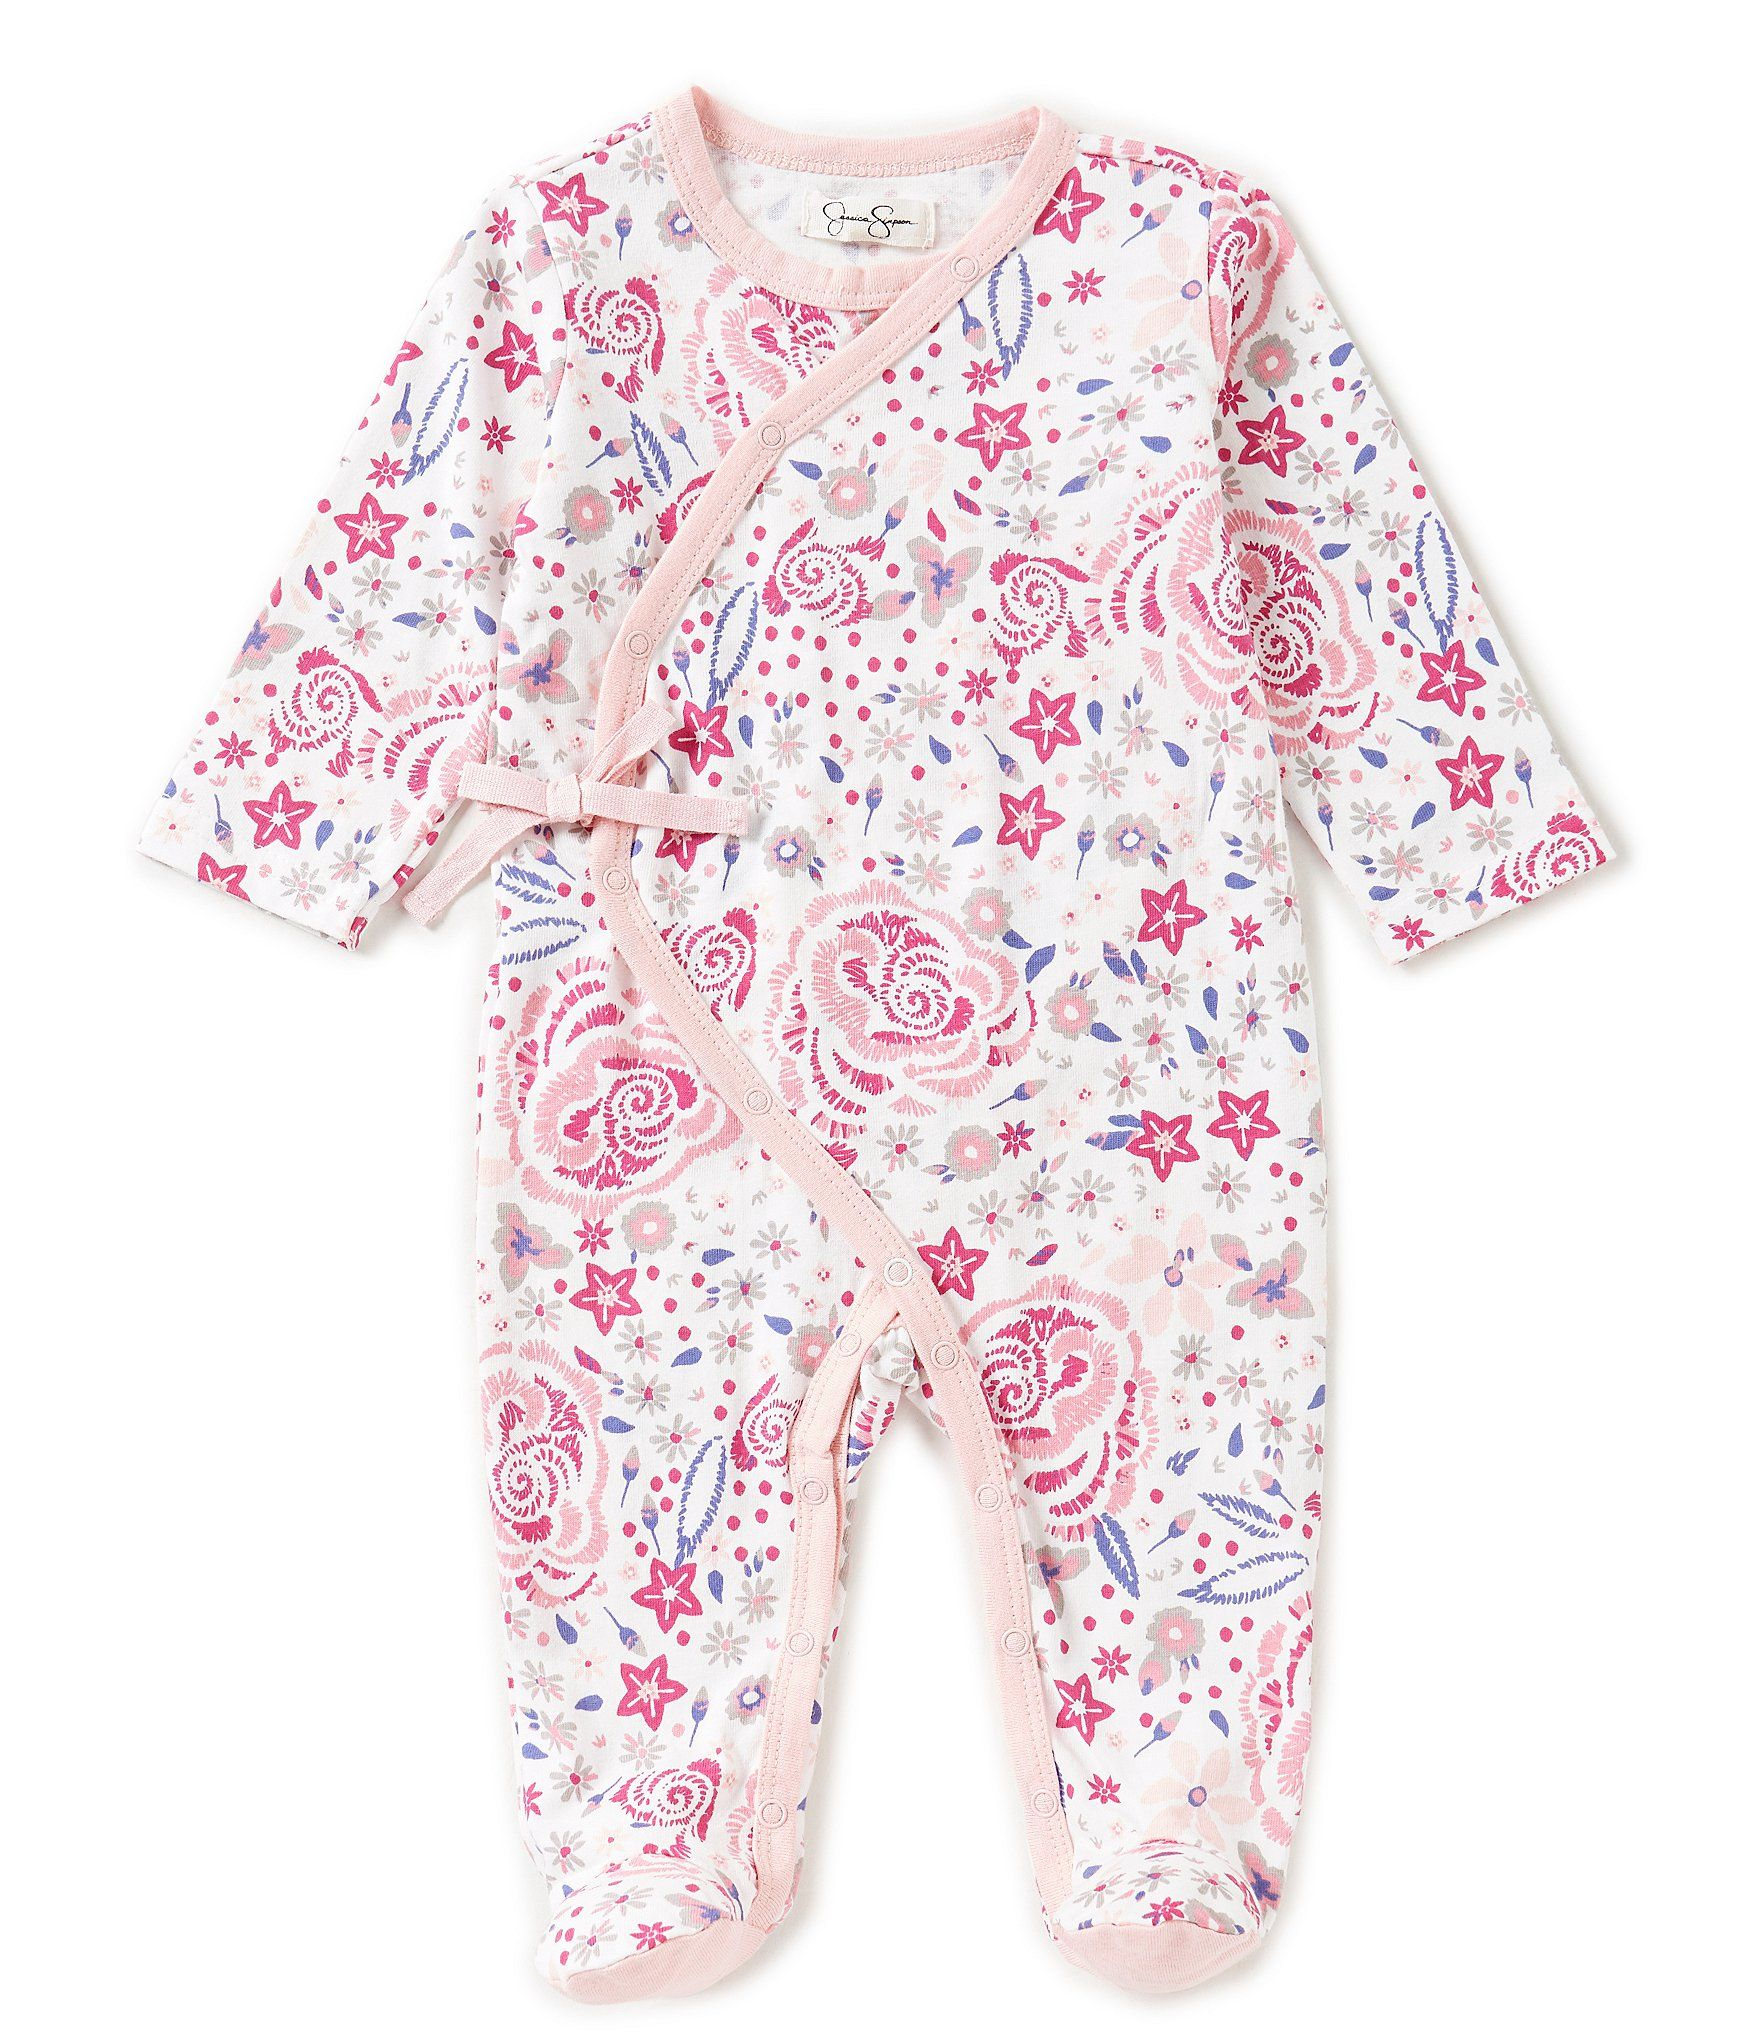 Shop for Jessica Simpson Baby Girls Newborn 9 Months Floral Printed